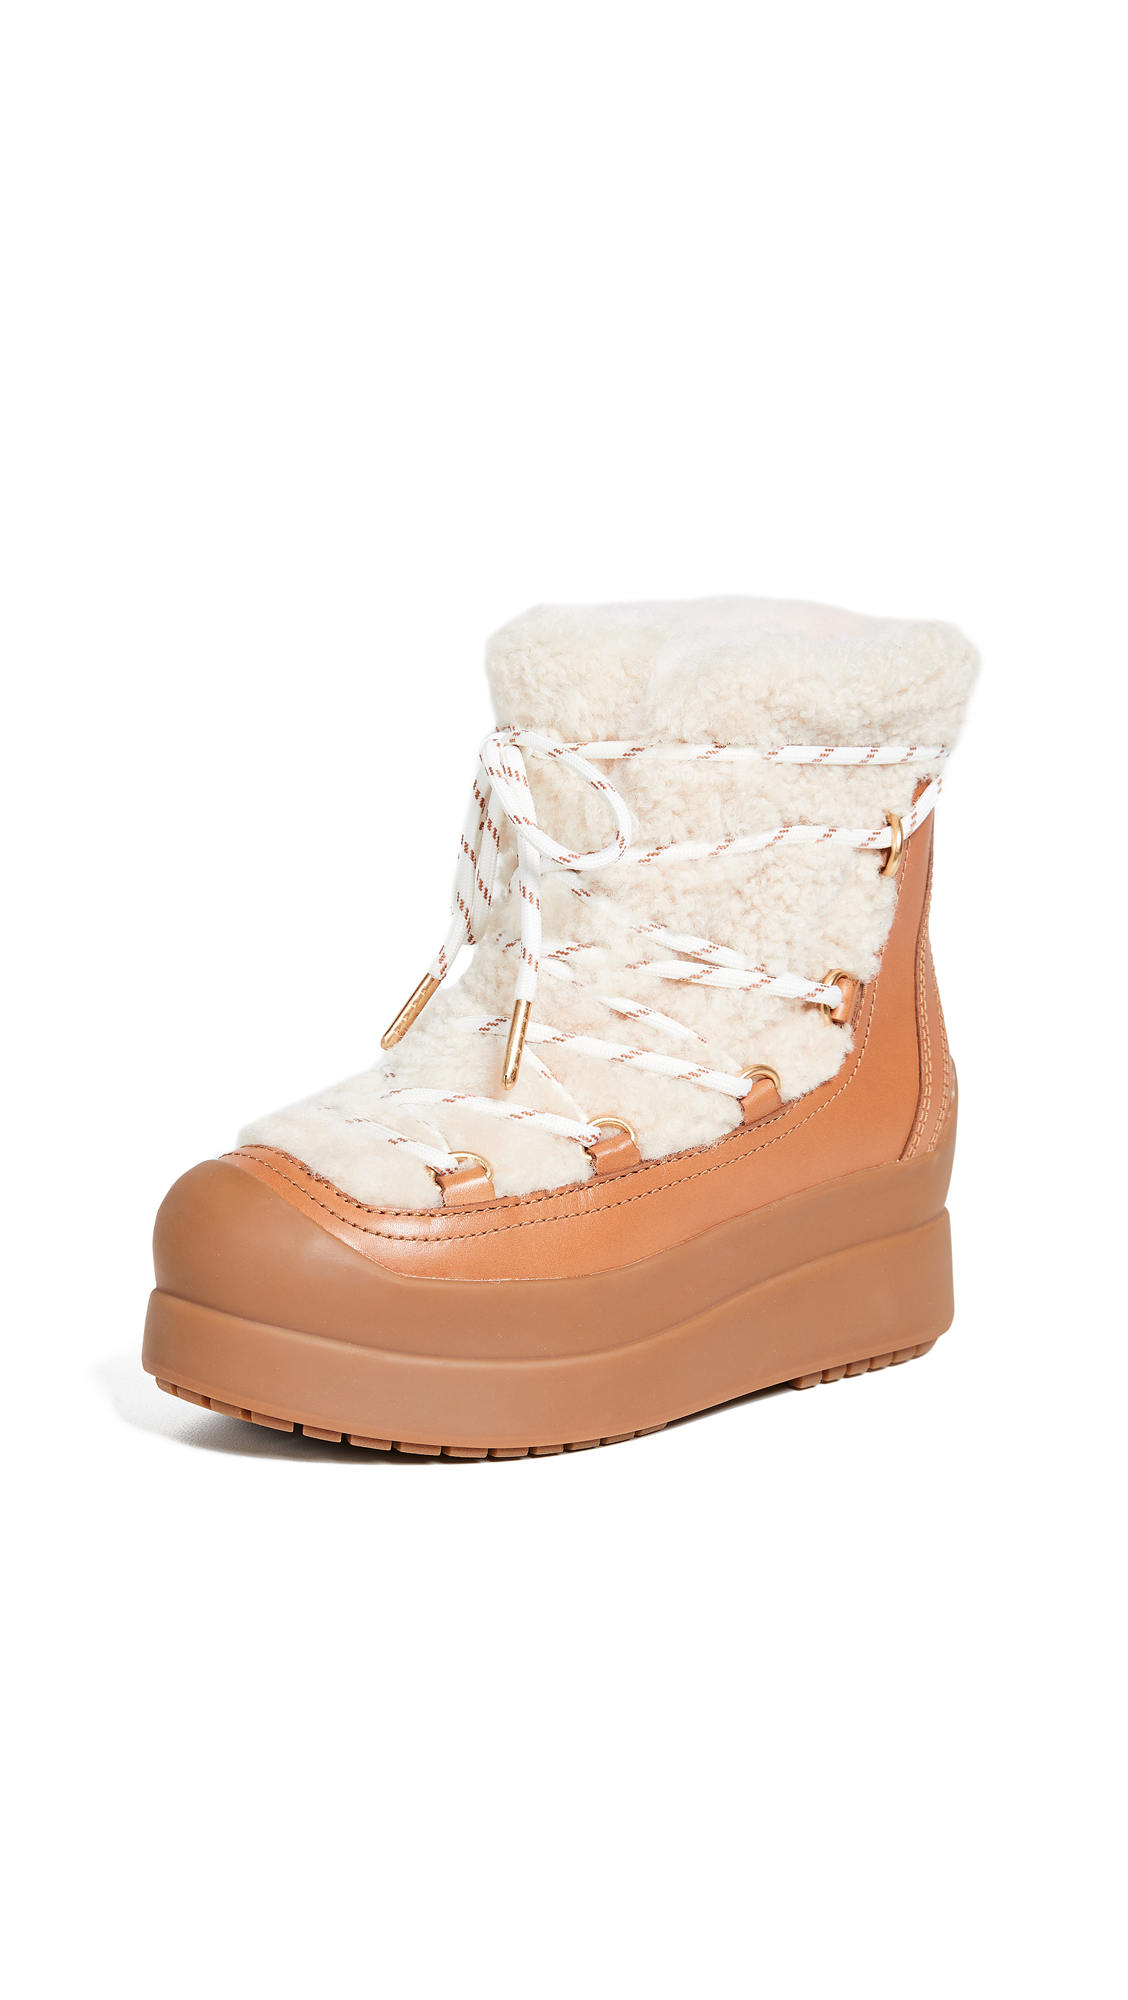 Tory Burch Courtney Shearling Boots - Natural/Tan